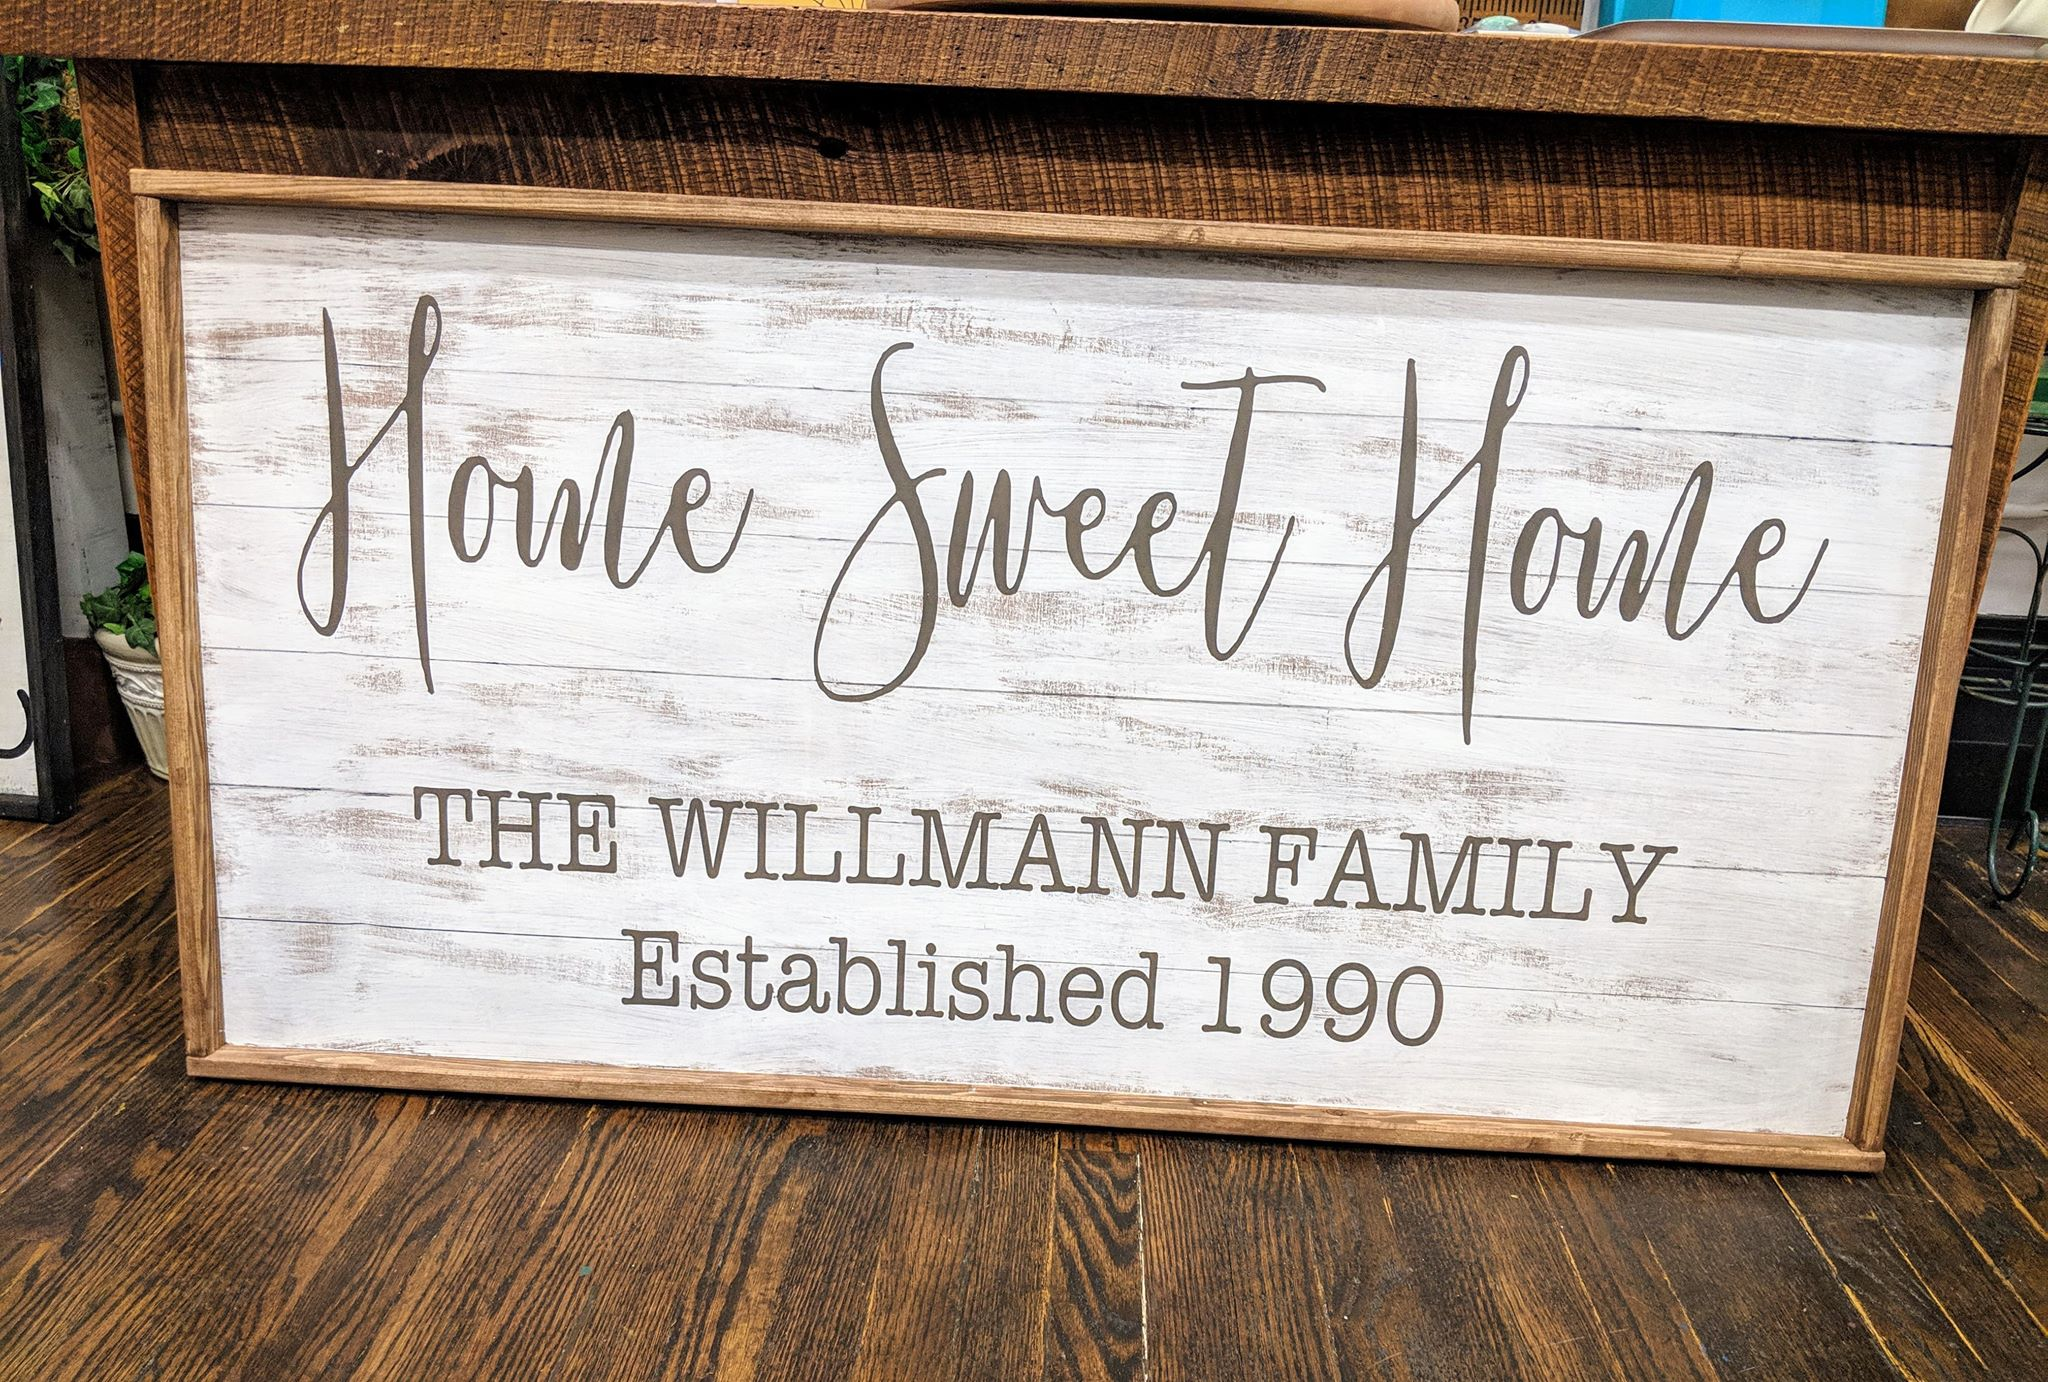 Oversized sign - Home Sweet Home Family name Est date